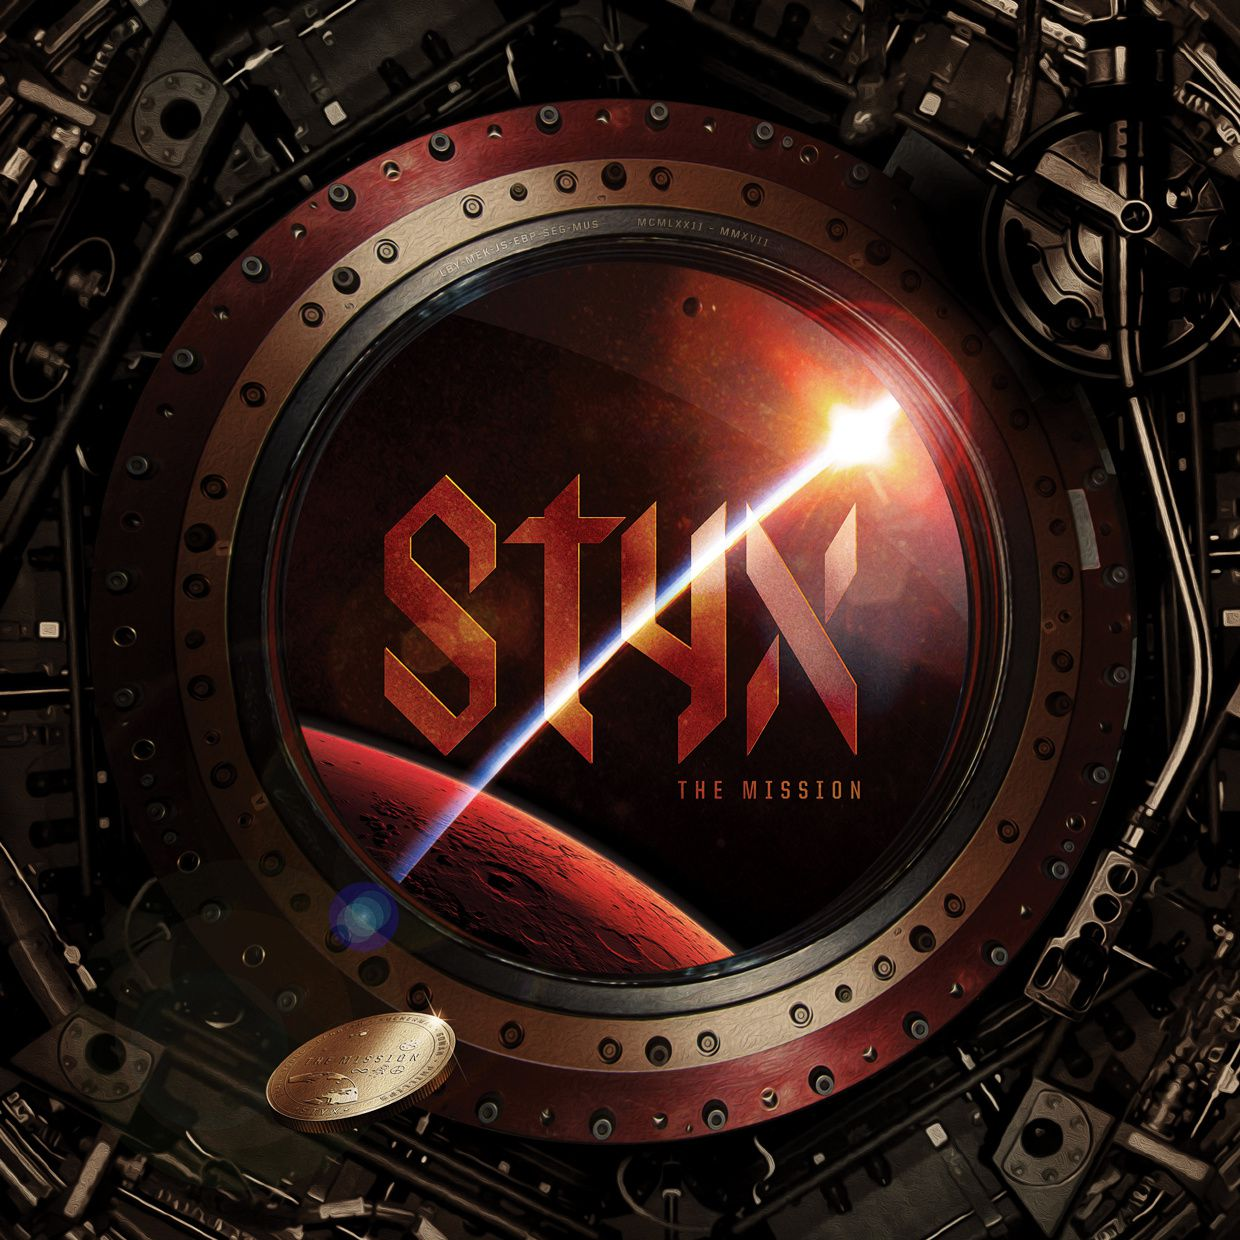 STYX - The Mission (2017)